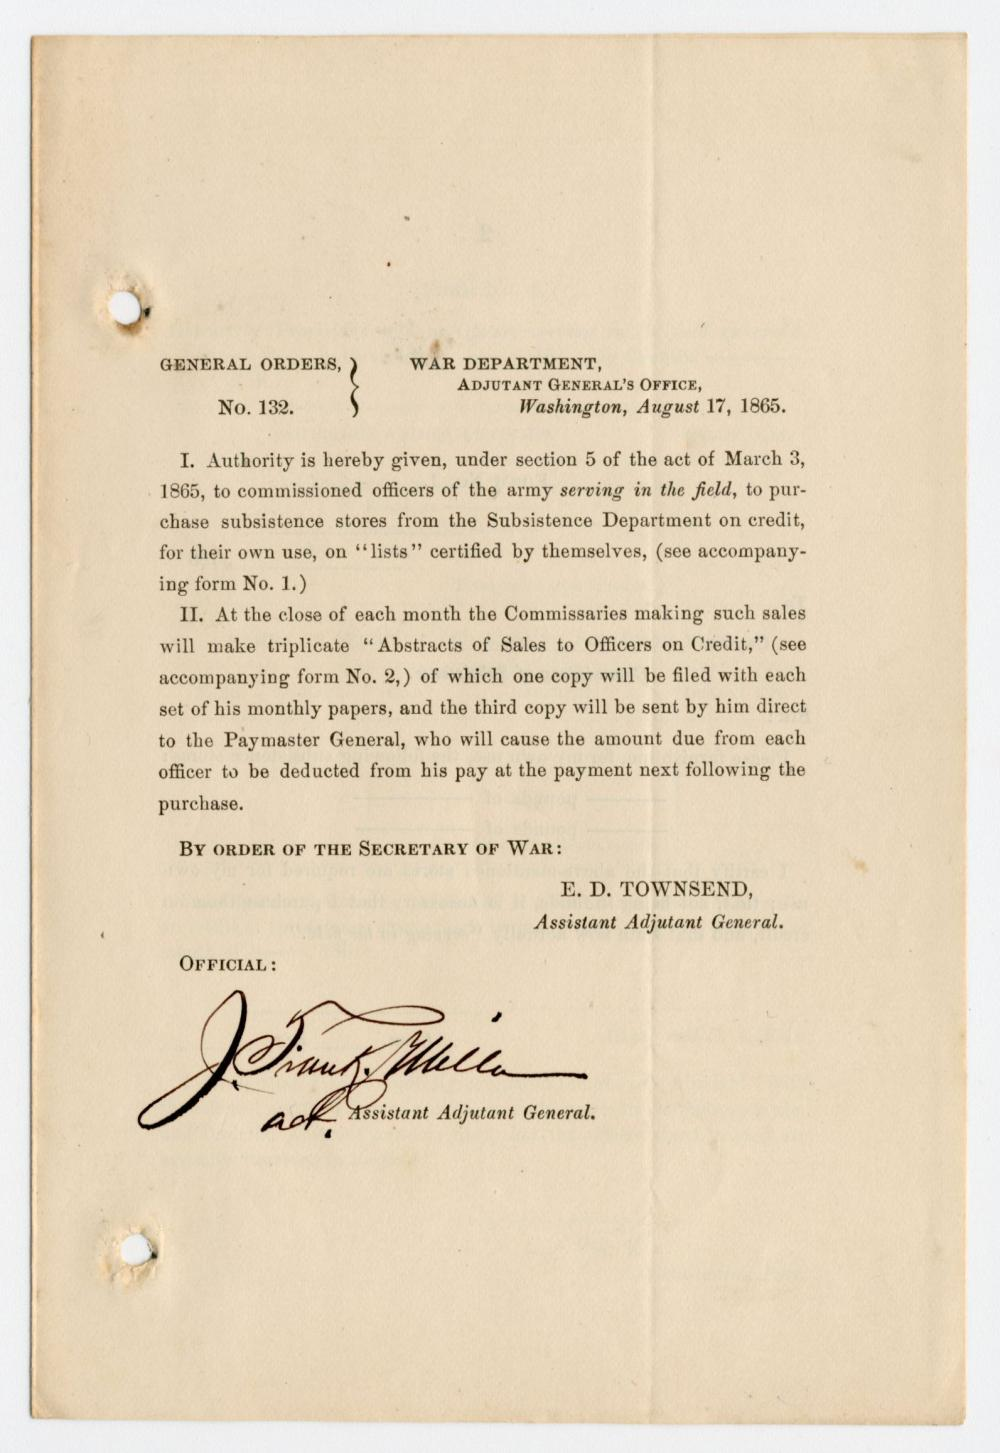 5 Civil War General Orders, Incl. 1 Issued 3 Days After Lincoln's Assassination